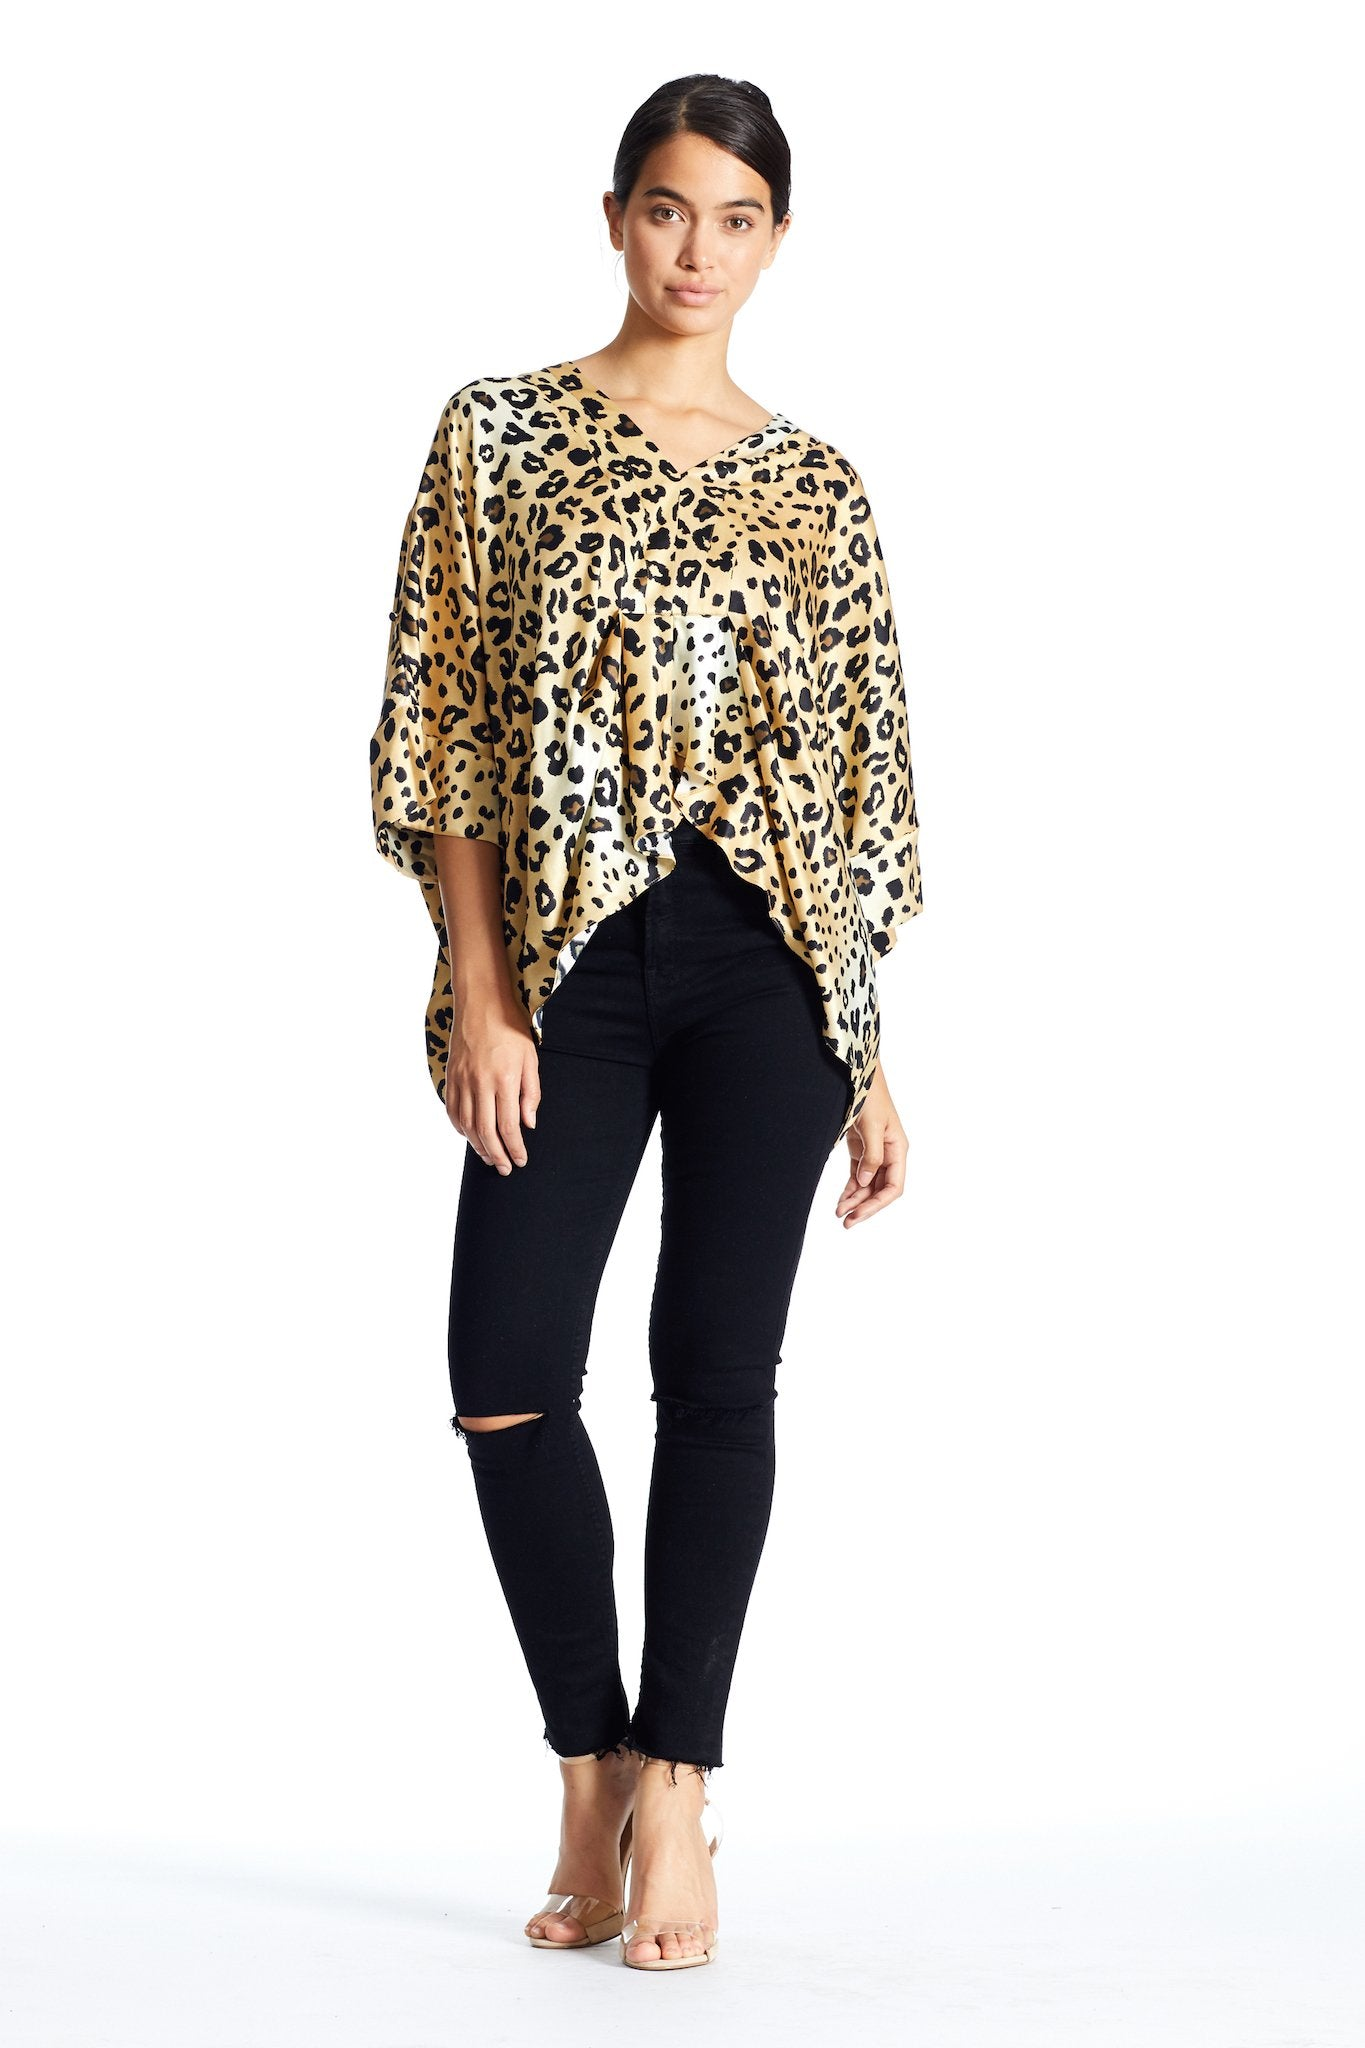 KIMONO TOP TOP by KENDALL + KYLIE